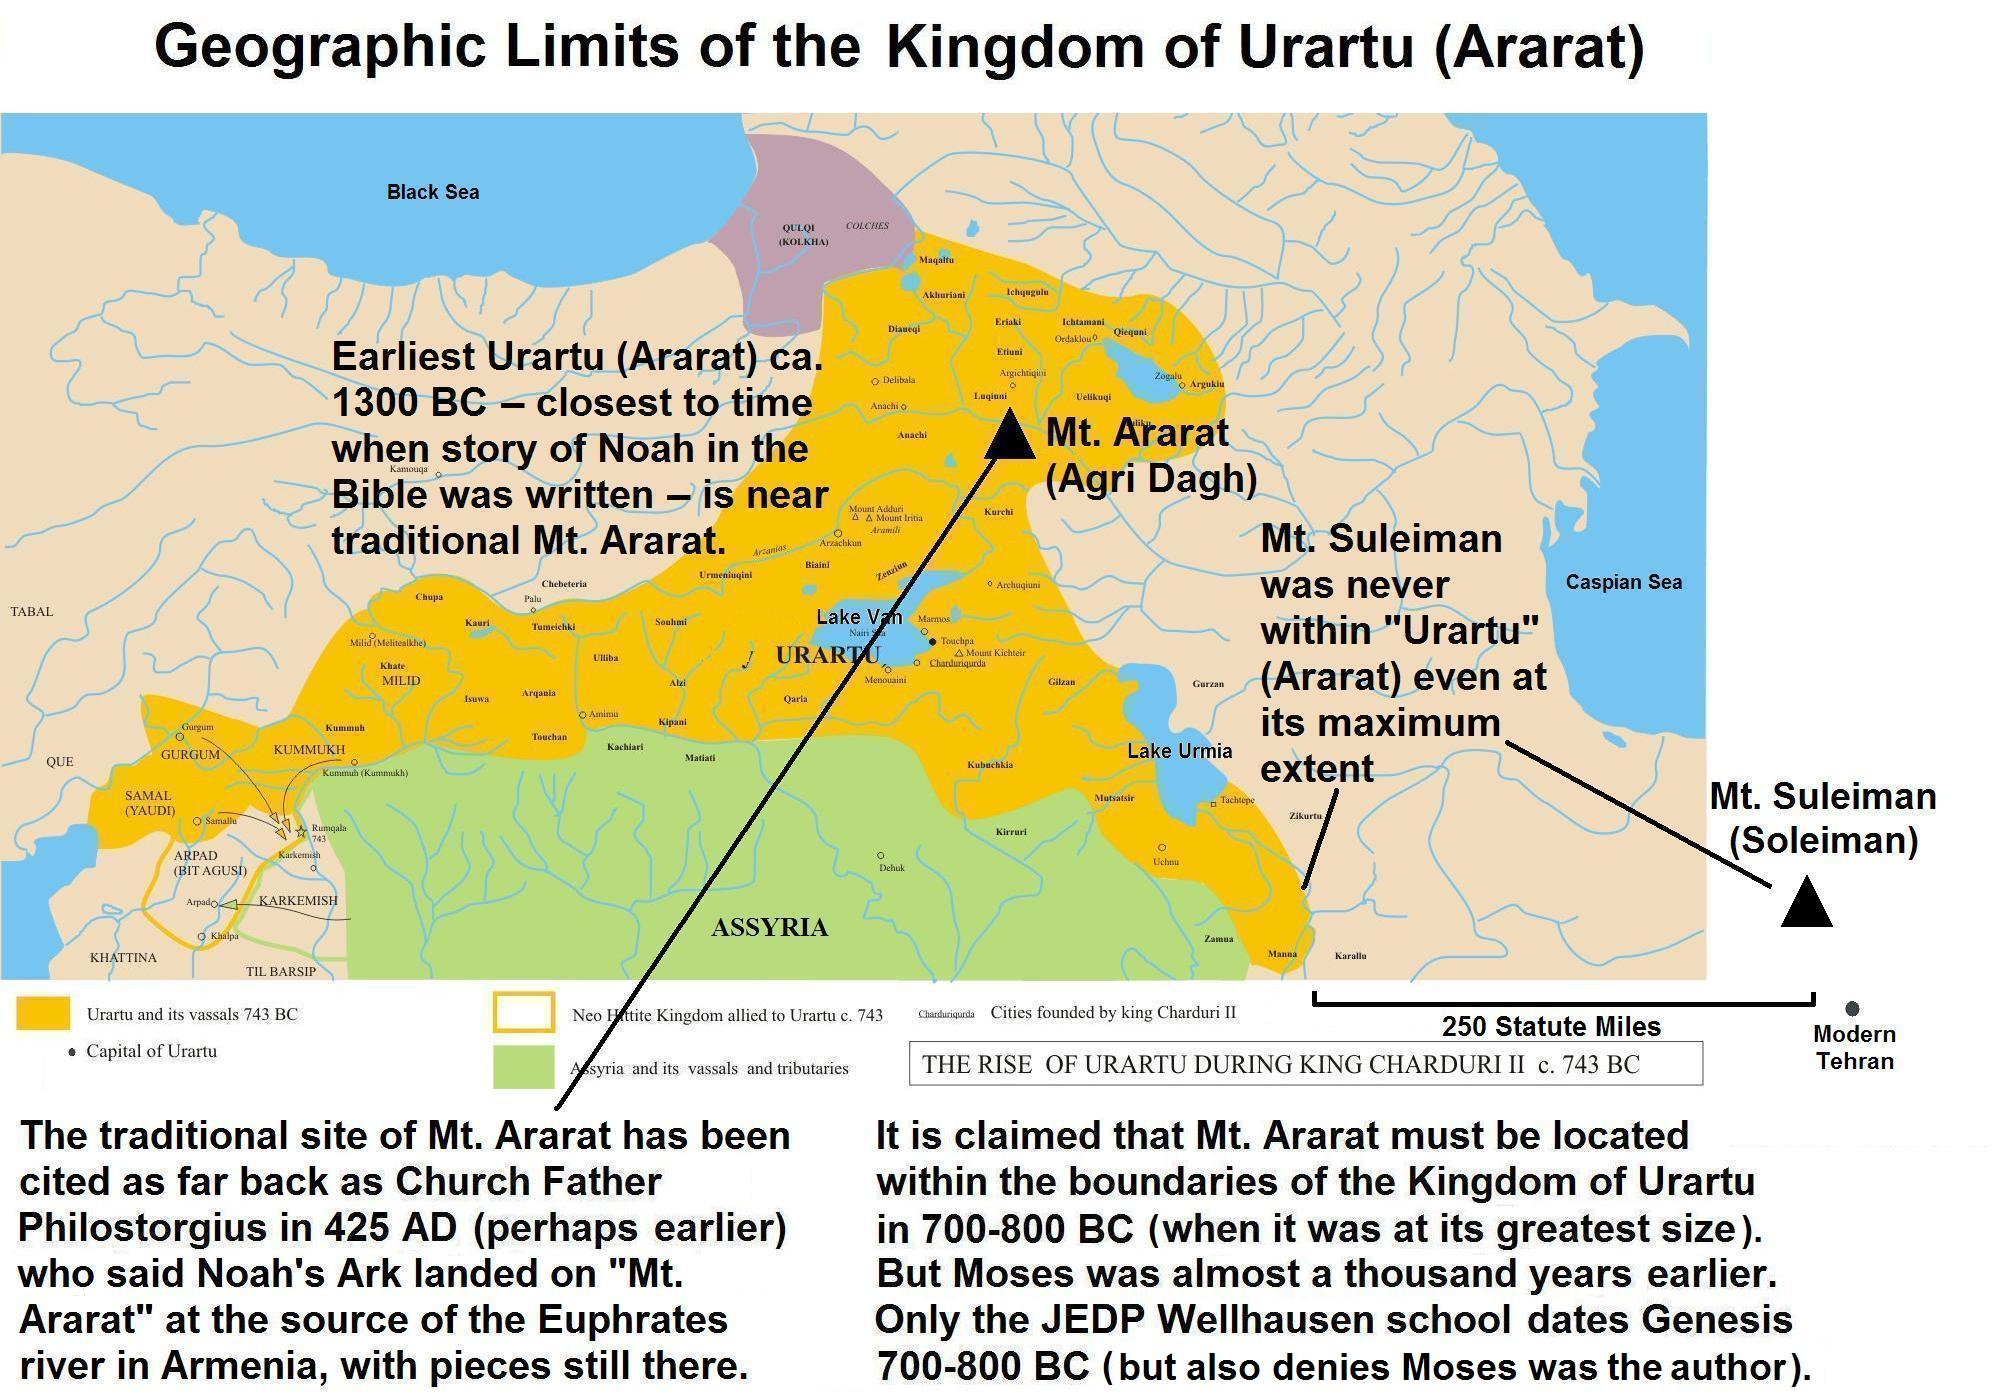 Urartu Map showing Mt. Suleiman is not in Urartu